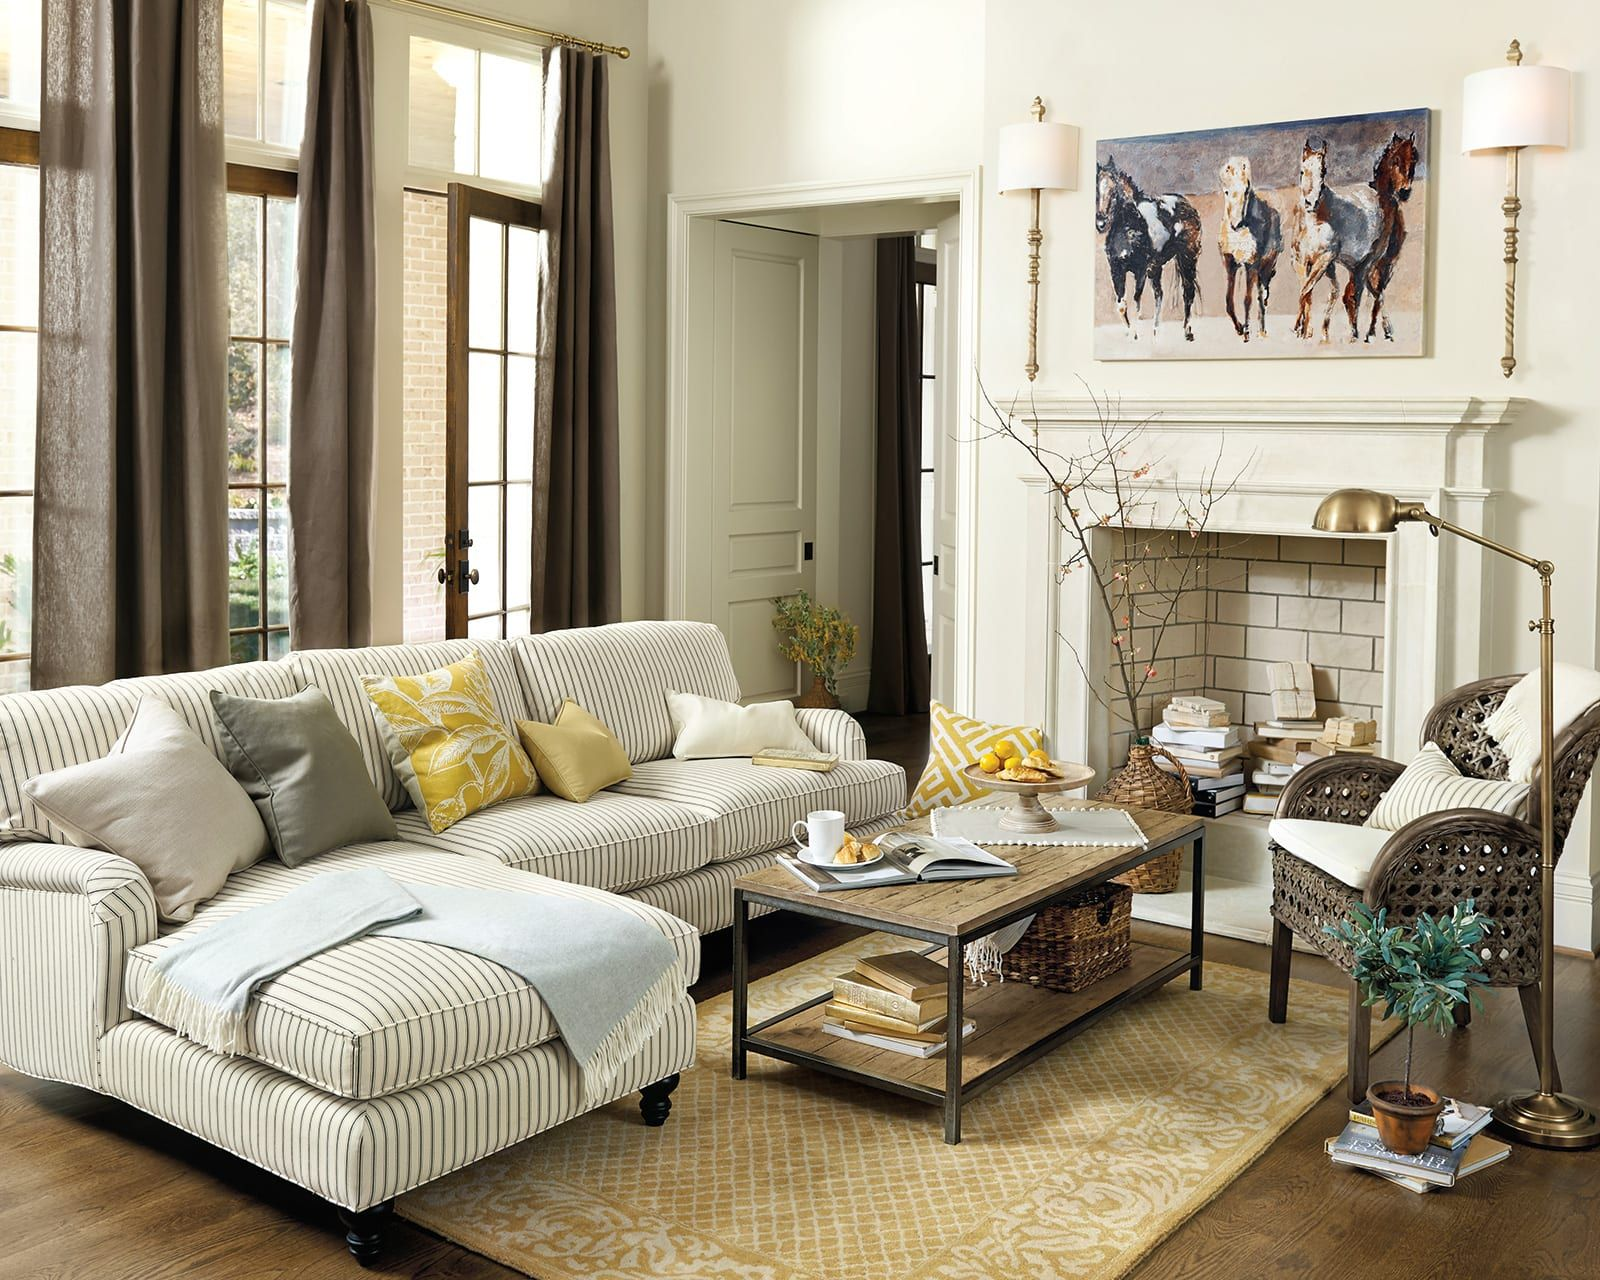 How To Match A Coffee Table To Your Sectional Sectional Coffee Table Sectional Living Room Layout Living Room Rug Placement